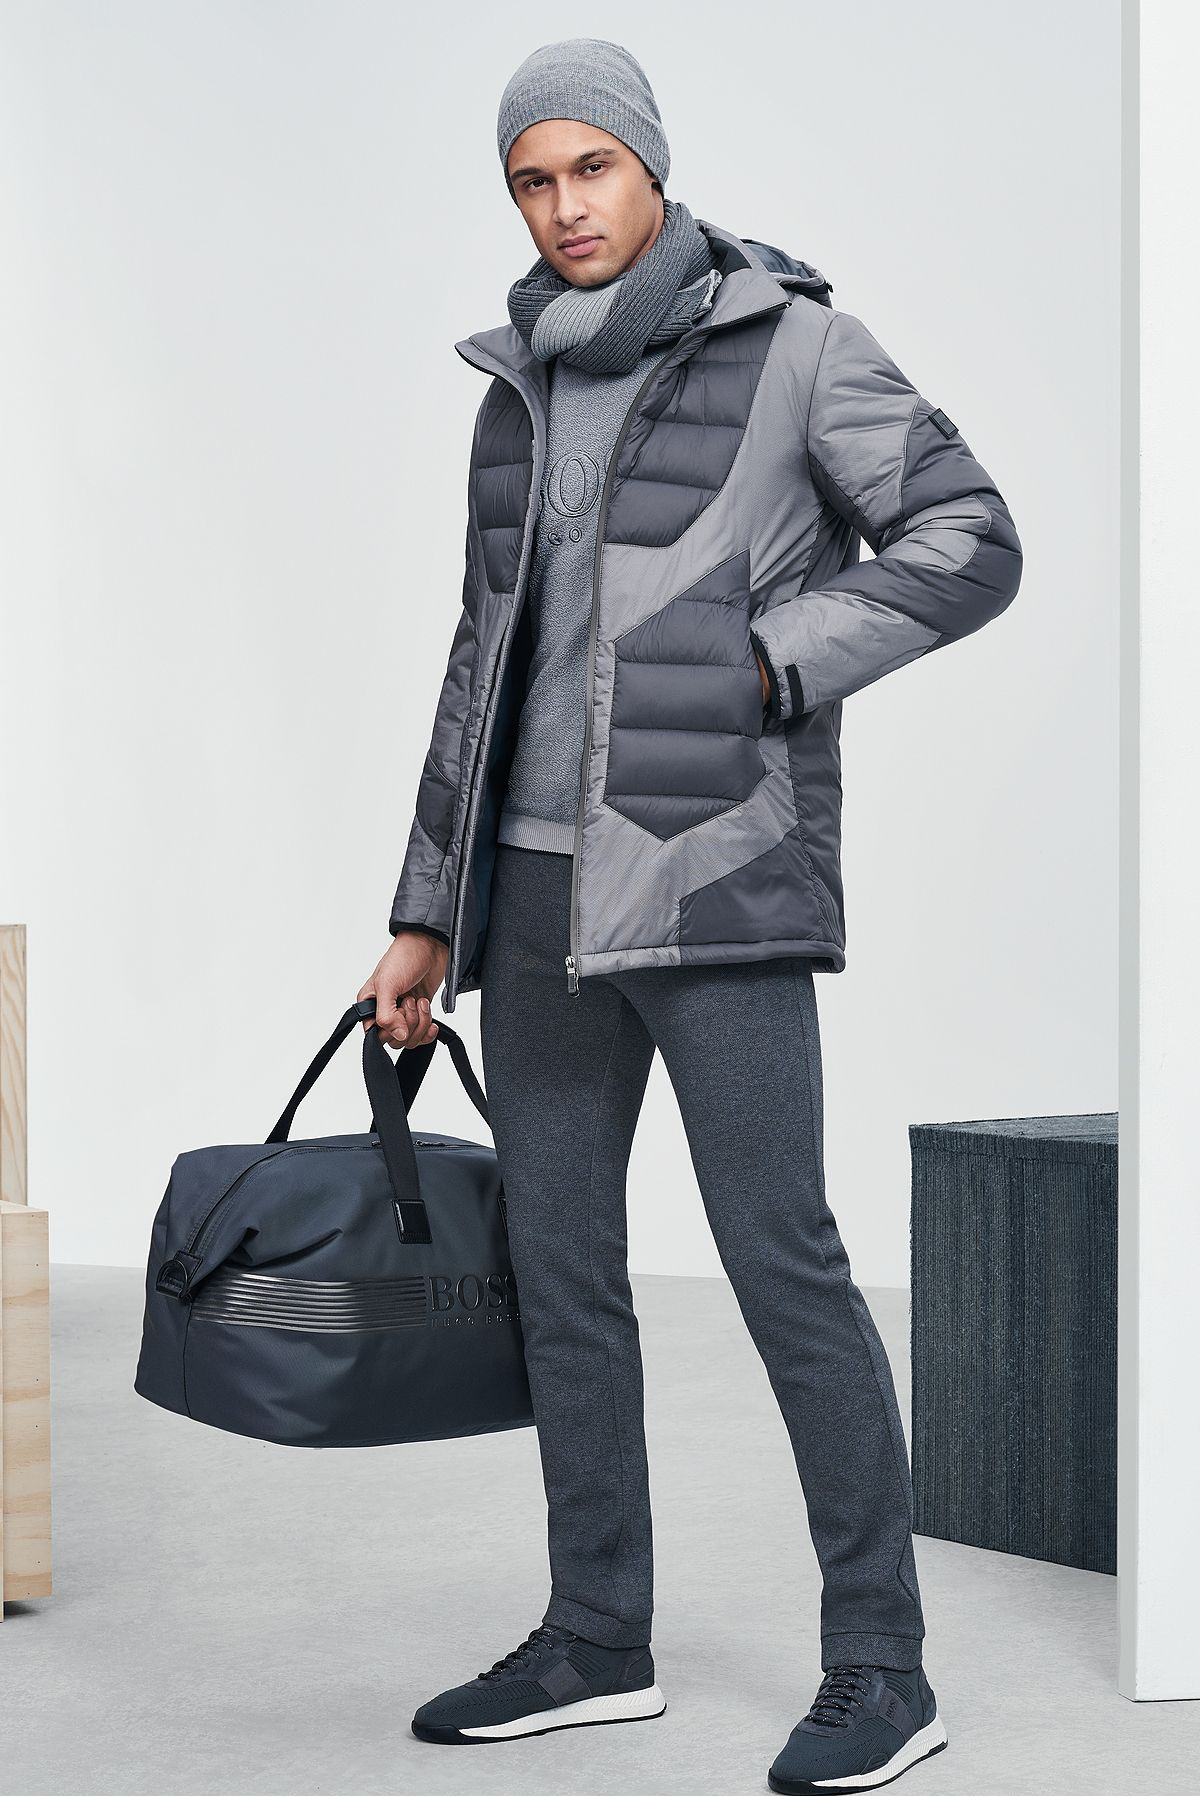 The Boss Menswear Fall Winter 2019 Collection Mens Winter Fashion Casual Wear For Men Mens Outfits [ 1796 x 1200 Pixel ]